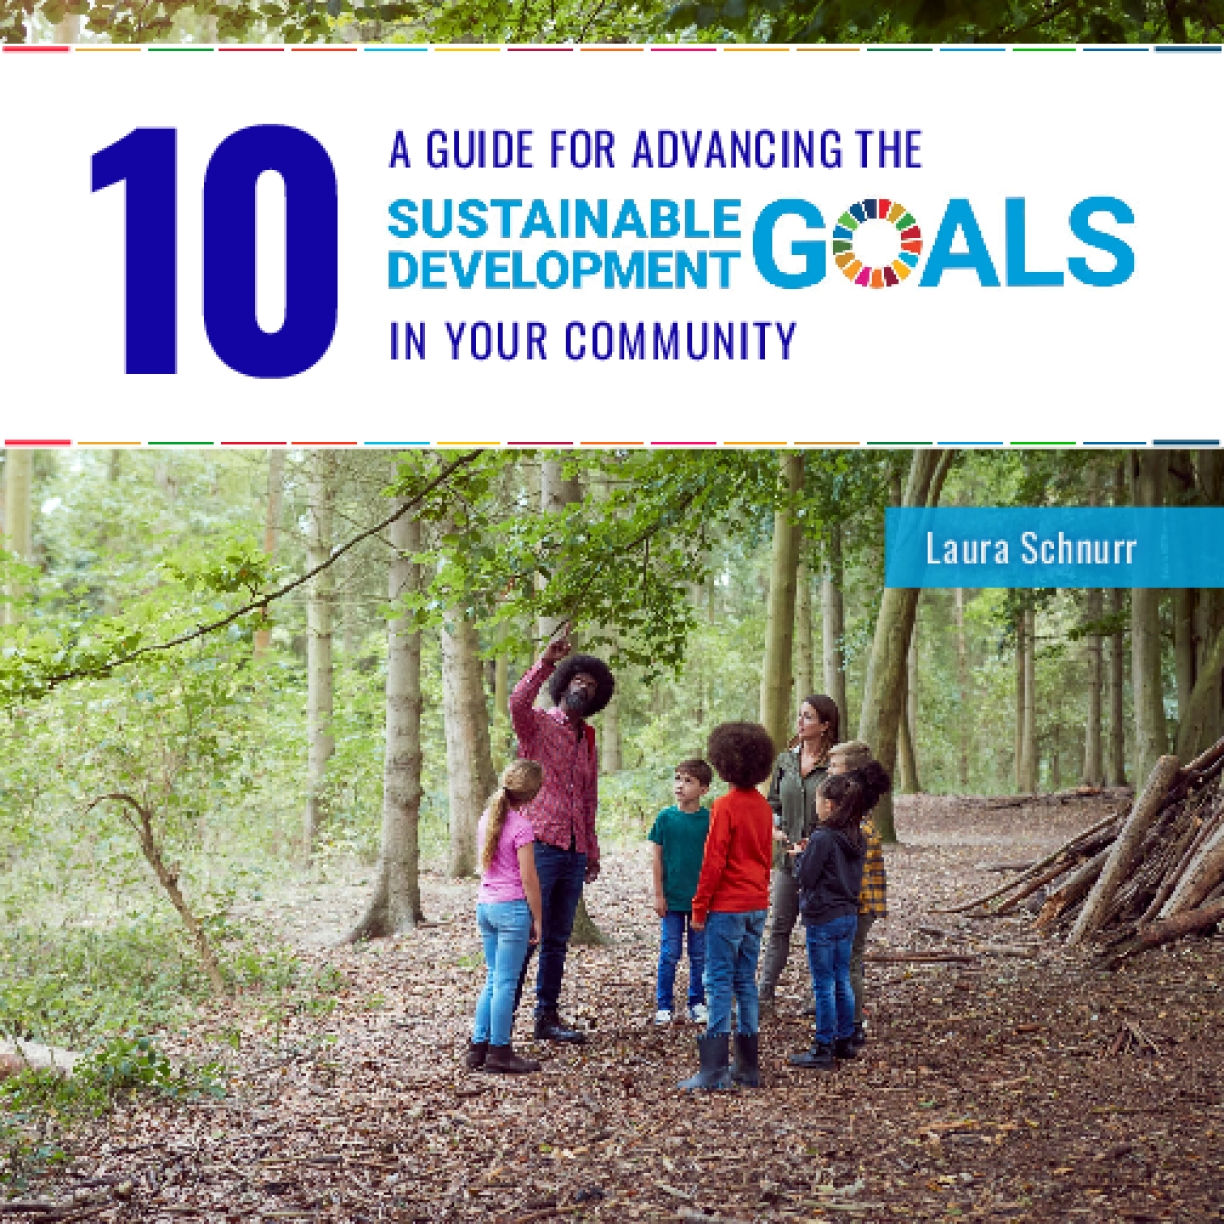 A Guide for Advancing the Sustainable Development Goals in Your Community